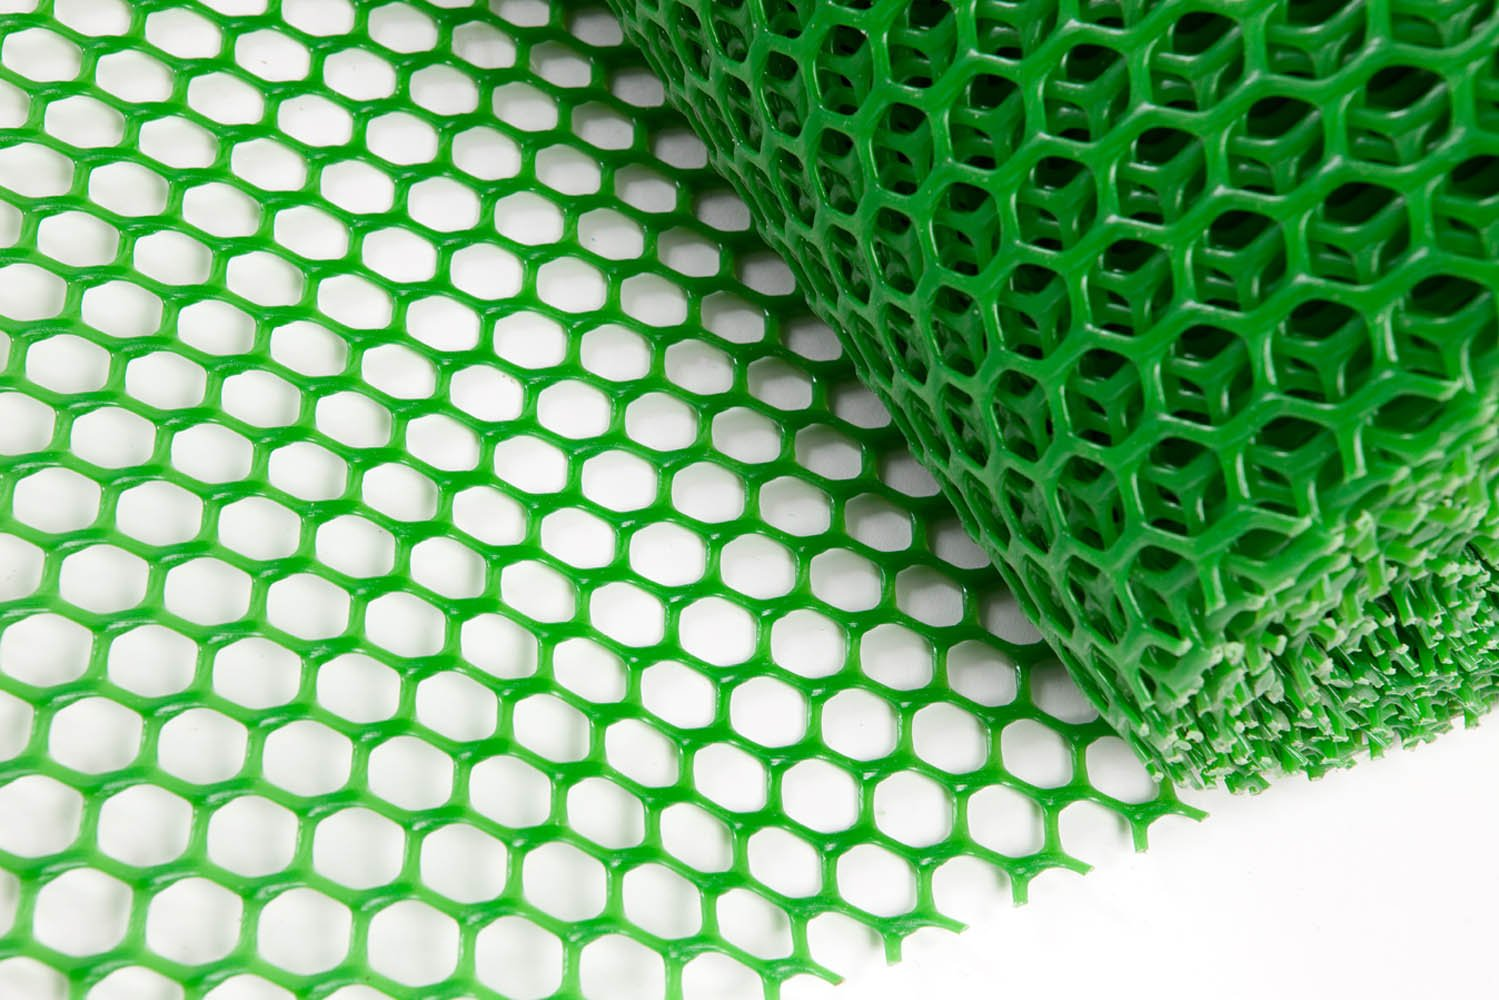 Easimat Grass Protection Mesh for Lawn or Car Park Reinforcement Green Plastic (10m)